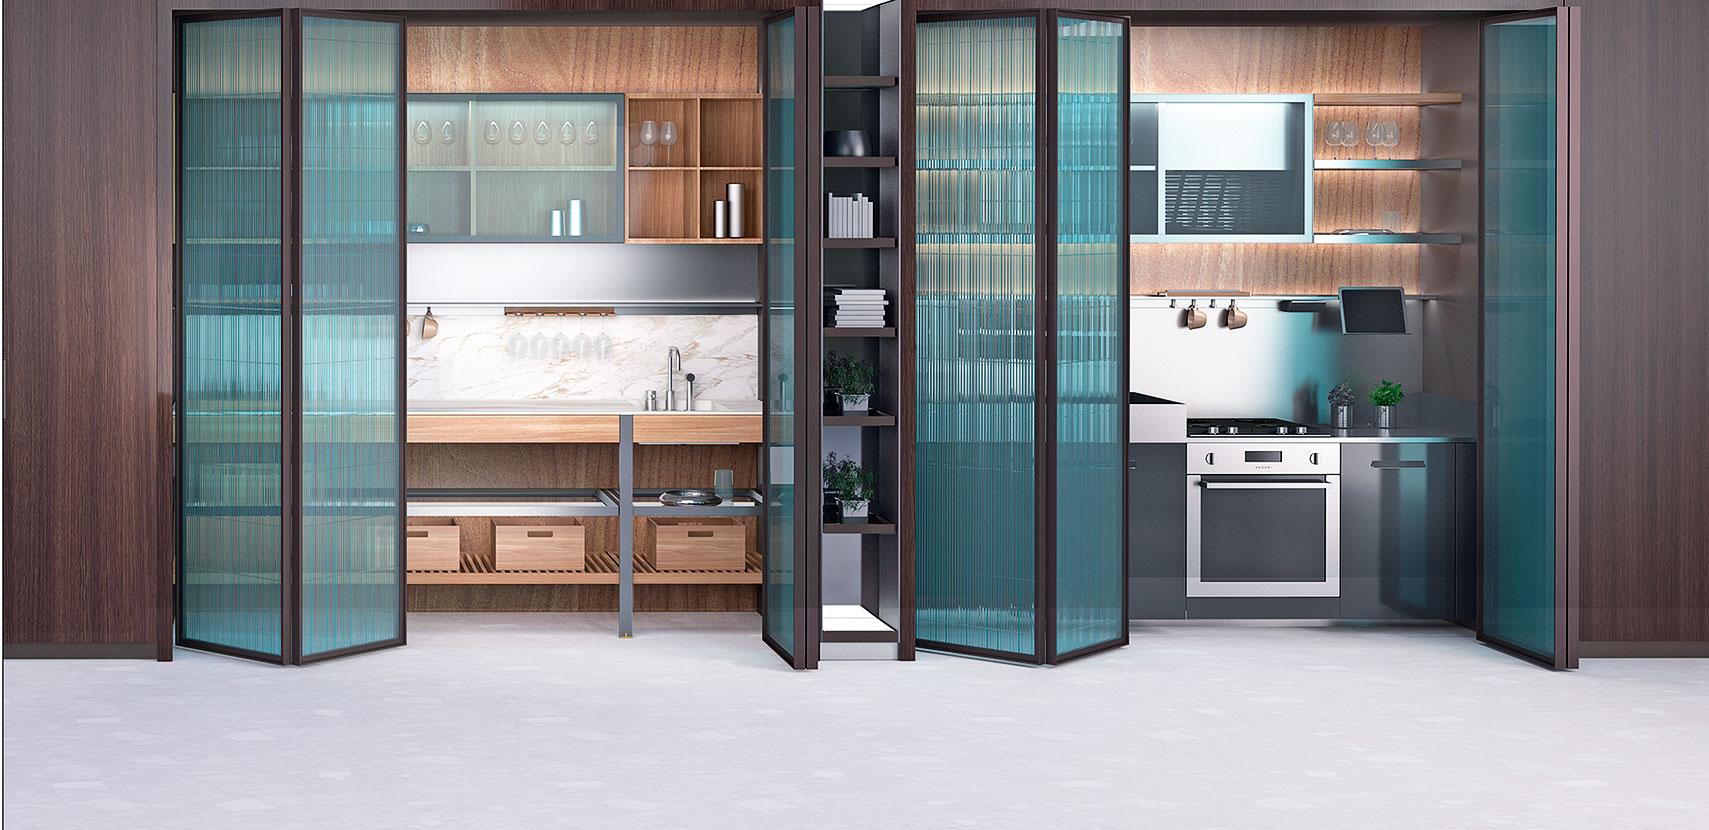 Breaking: The latest kitchen design trends for 2019